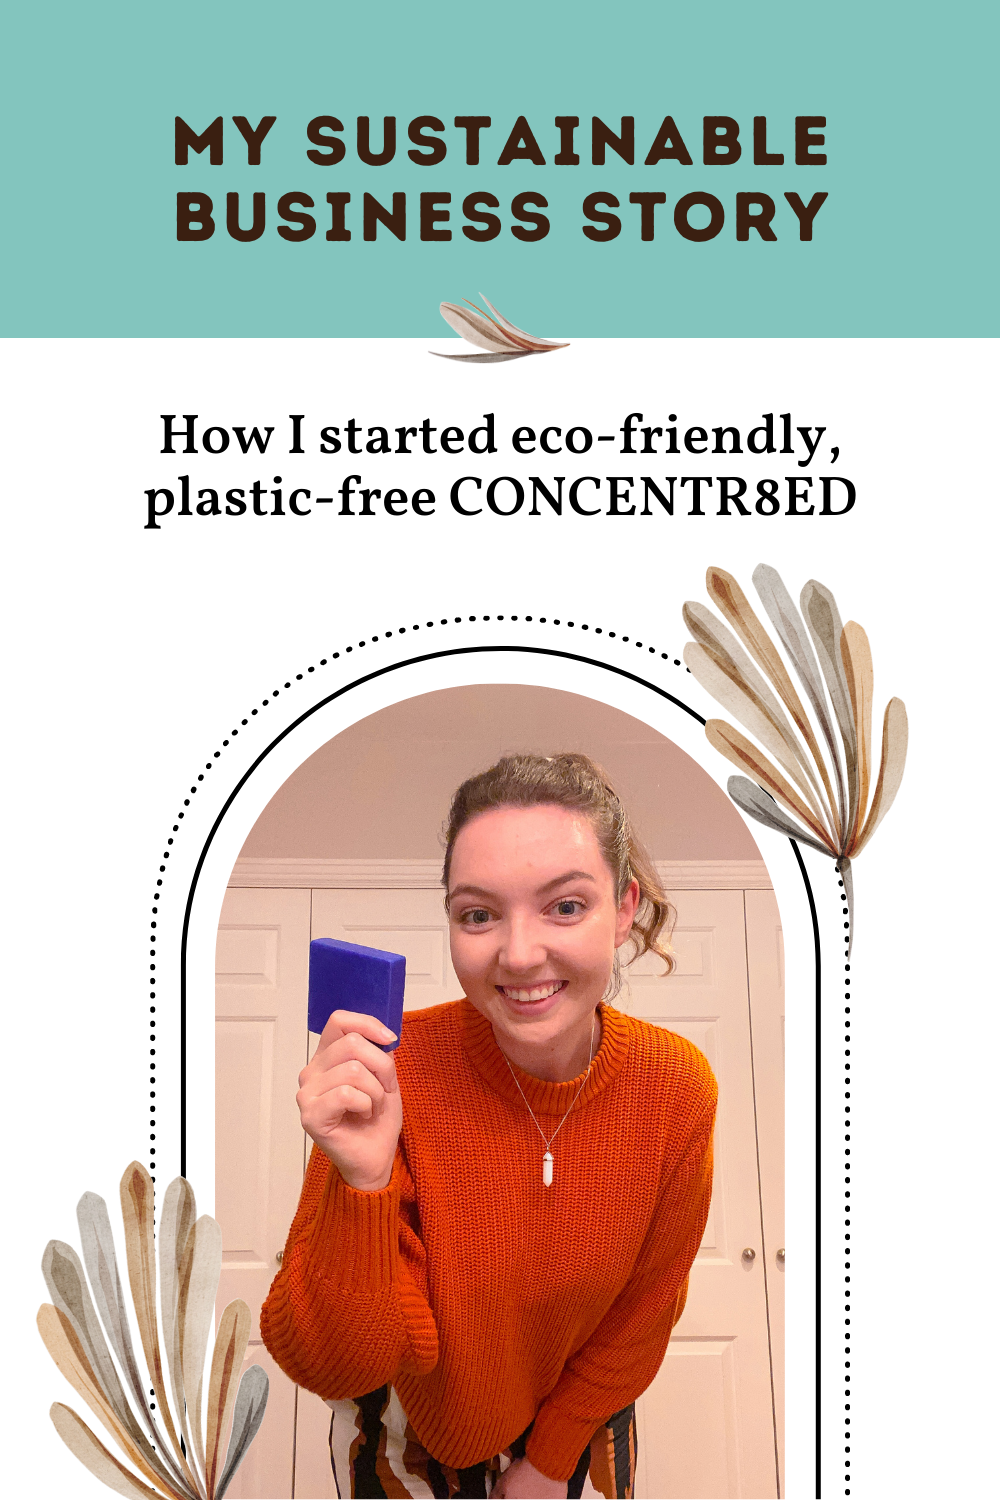 My sustainable business story: how I launched CONCENTR8ED.  Eco friendly businesses and sustainable brands are rising in popularity. A social business is a great way to ethically make extra money.   Learn how I started an eco friendly business and grew a sustainable brand